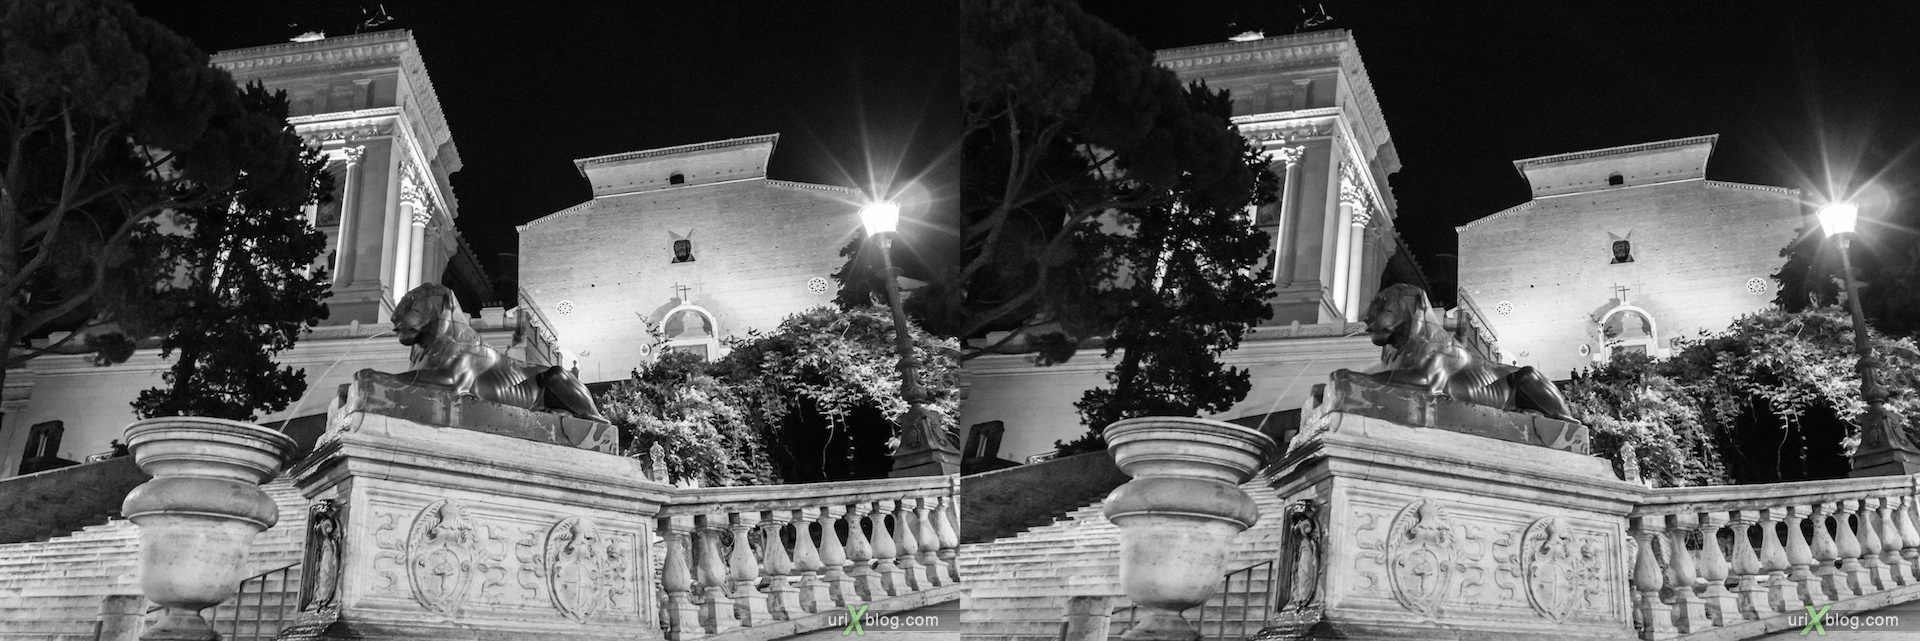 2012, fountain, lion, Capitoline museum, Vittoriano, Rome, Italy, 3D, stereo pair, cross-eyed, crossview, cross view stereo pair